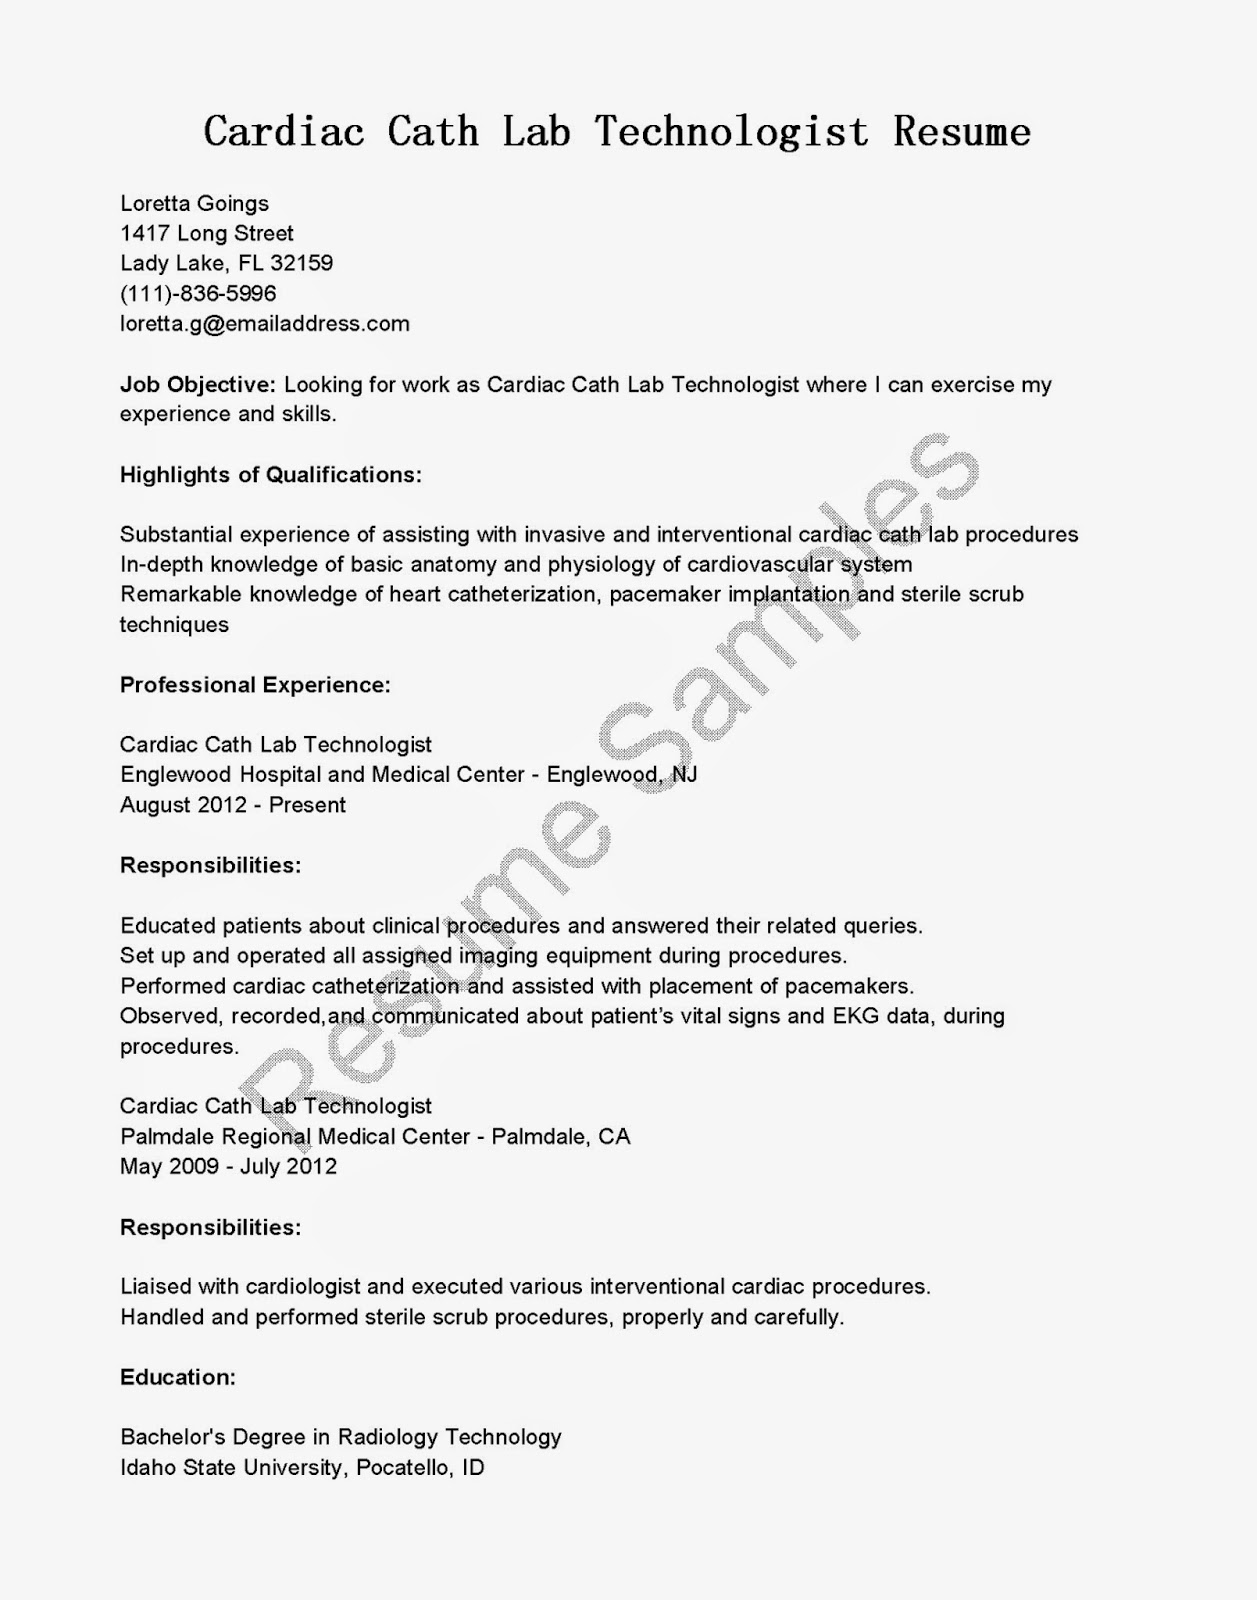 Cath Lab Tech Resume Resume Samples Cardiac Cath Lab Technologist Resume Sample